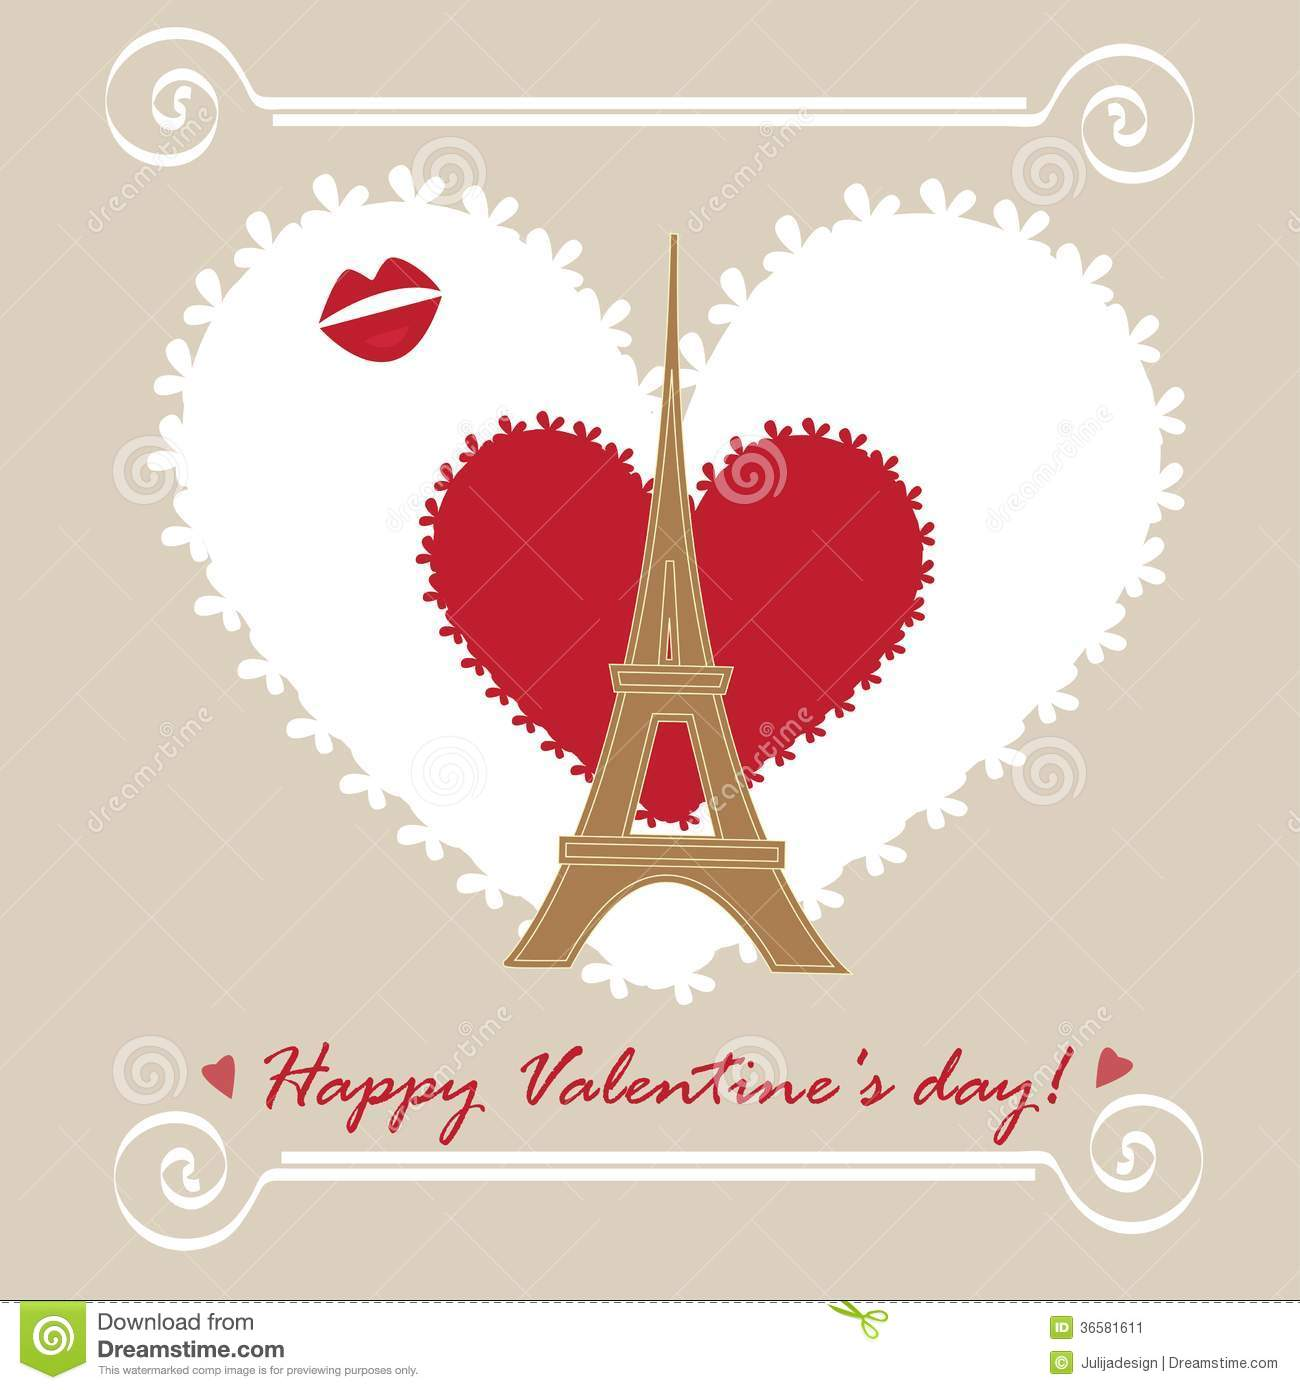 Happy Valentines Day Card Image Image 36581611 – Happy Valentines Day Cards